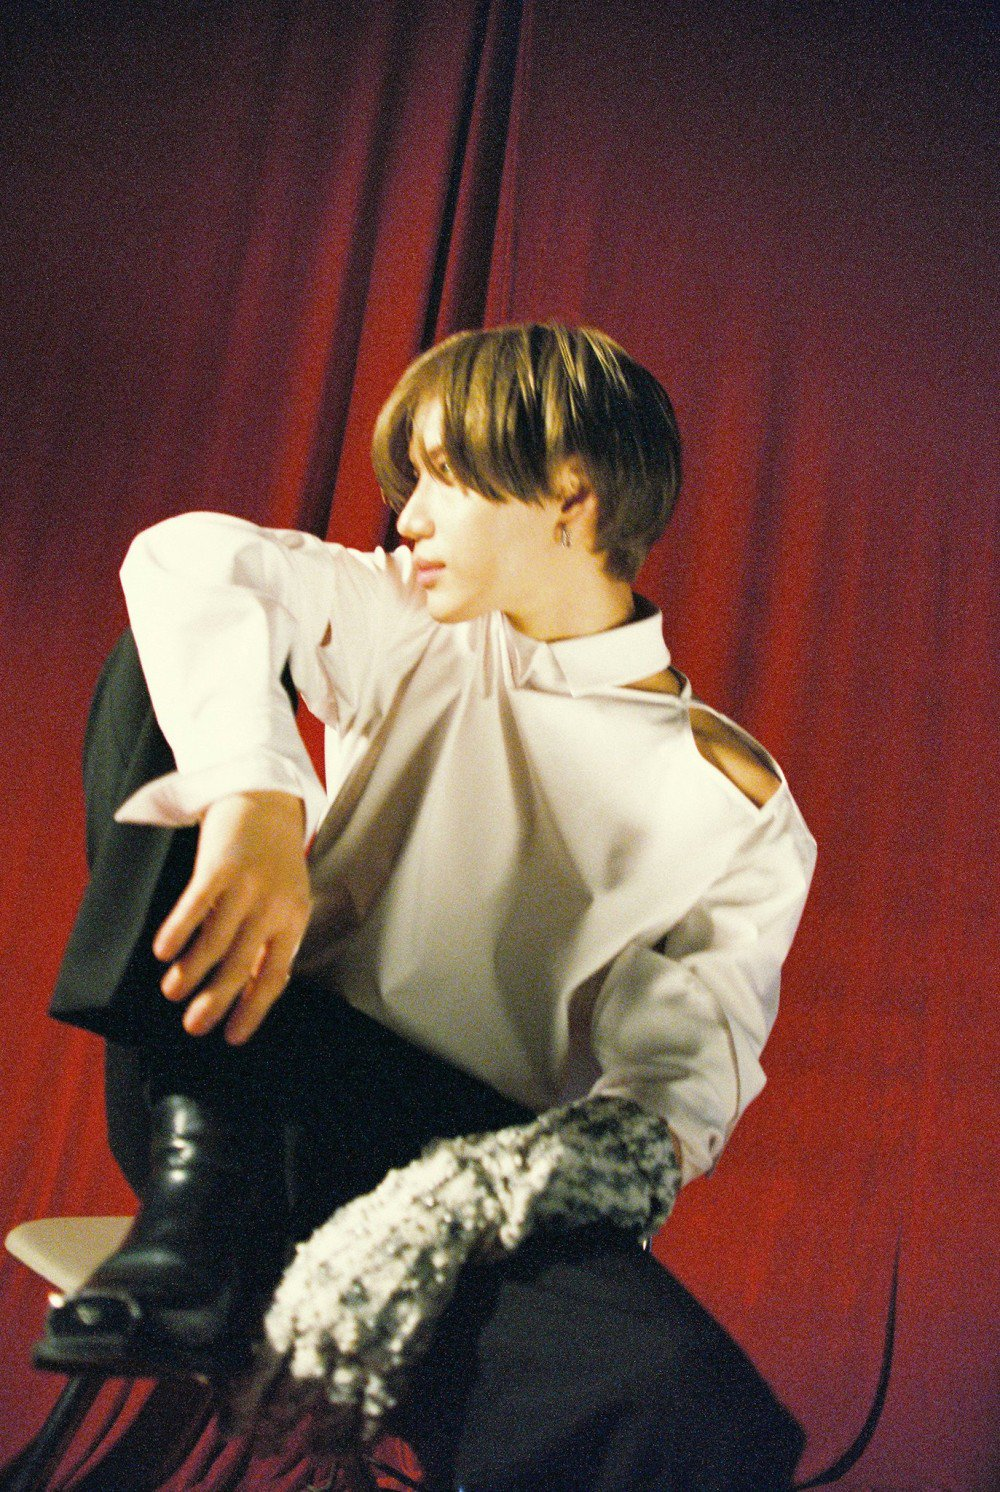 SHINees Taemin returns with captivating new song Want